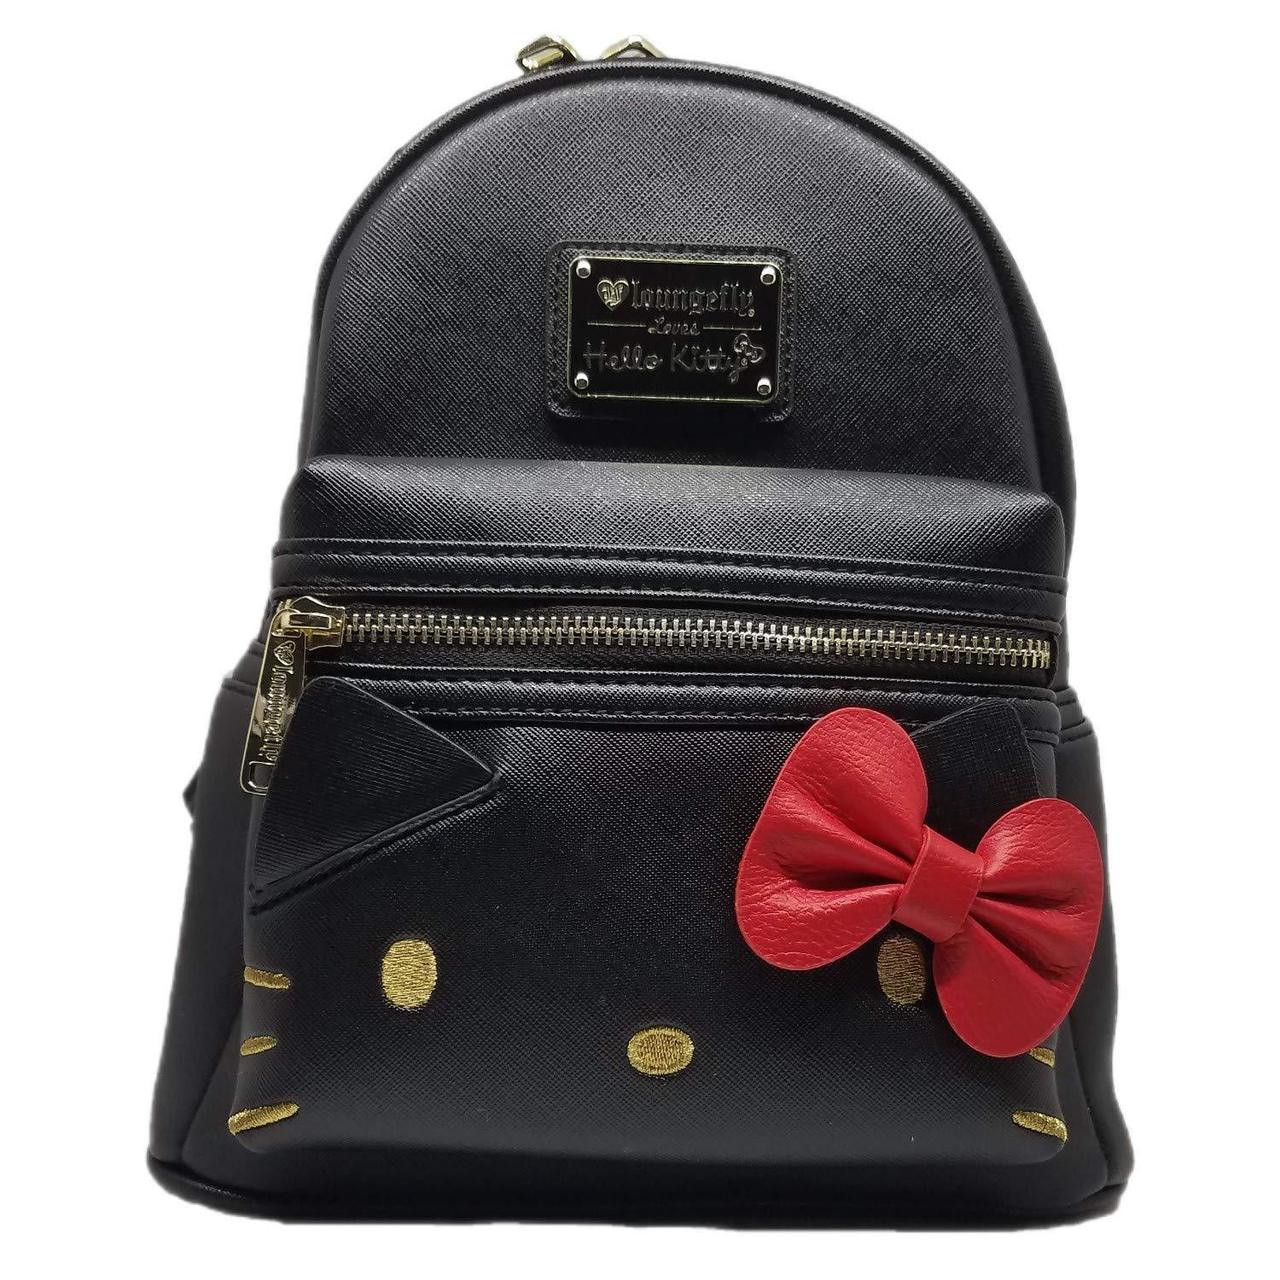 503375dc7 Loungefly Sanrio Hello Kitty Bow Cute Black Mini Faux Leather Backpack  SANBK0344 - Fearless Apparel